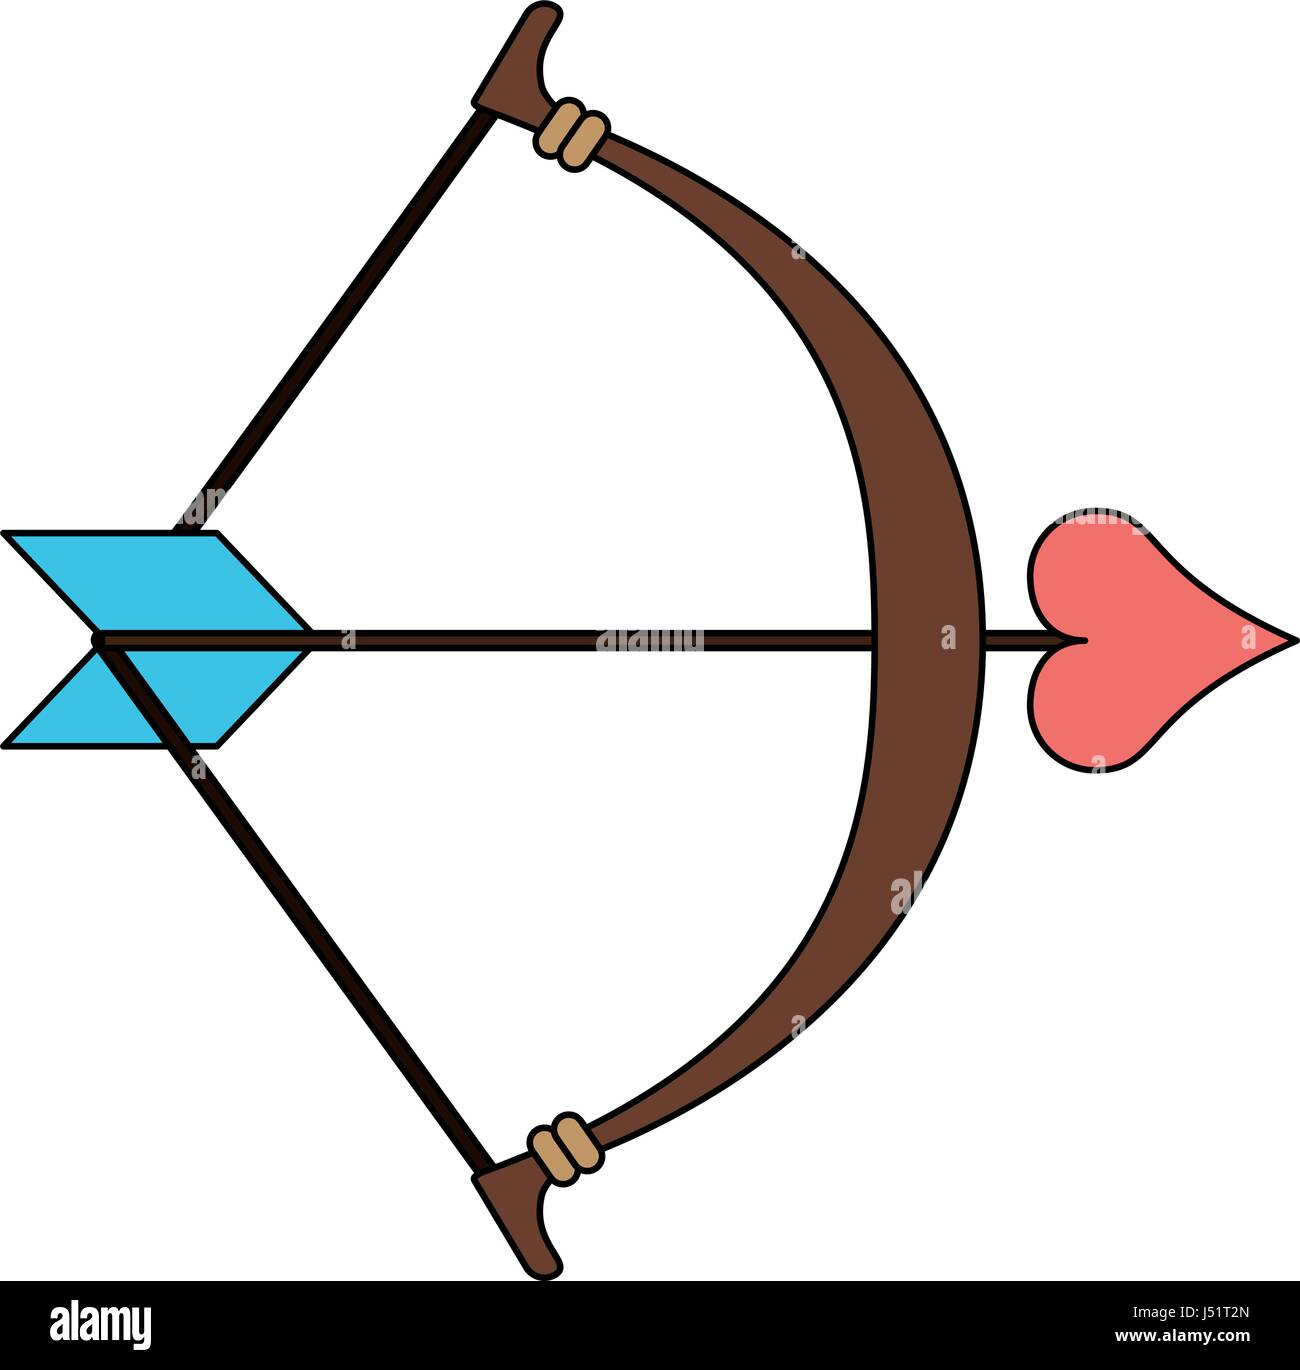 Diagram Heart Bow And Arrows - Electrical Work Wiring Diagram •